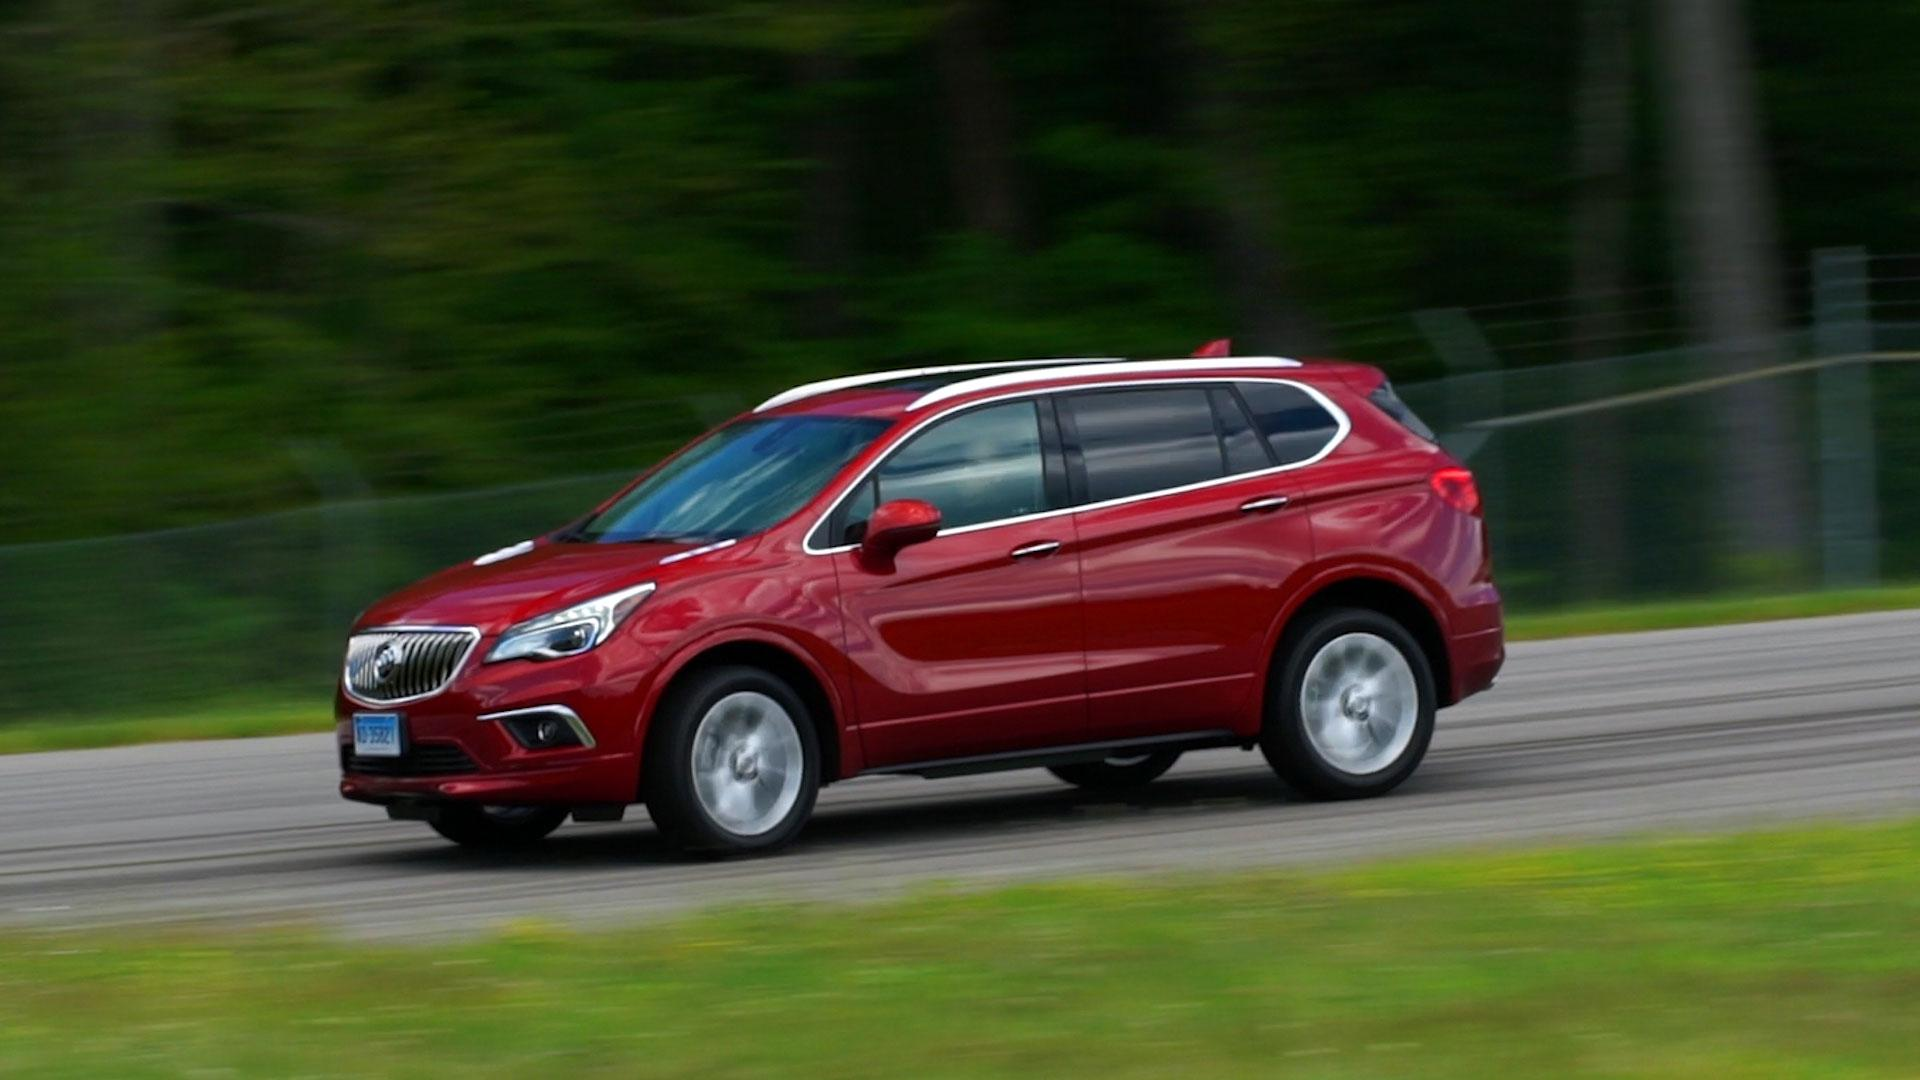 mov compact design sleek suvs encore proportions suv give balanced this luxury buick